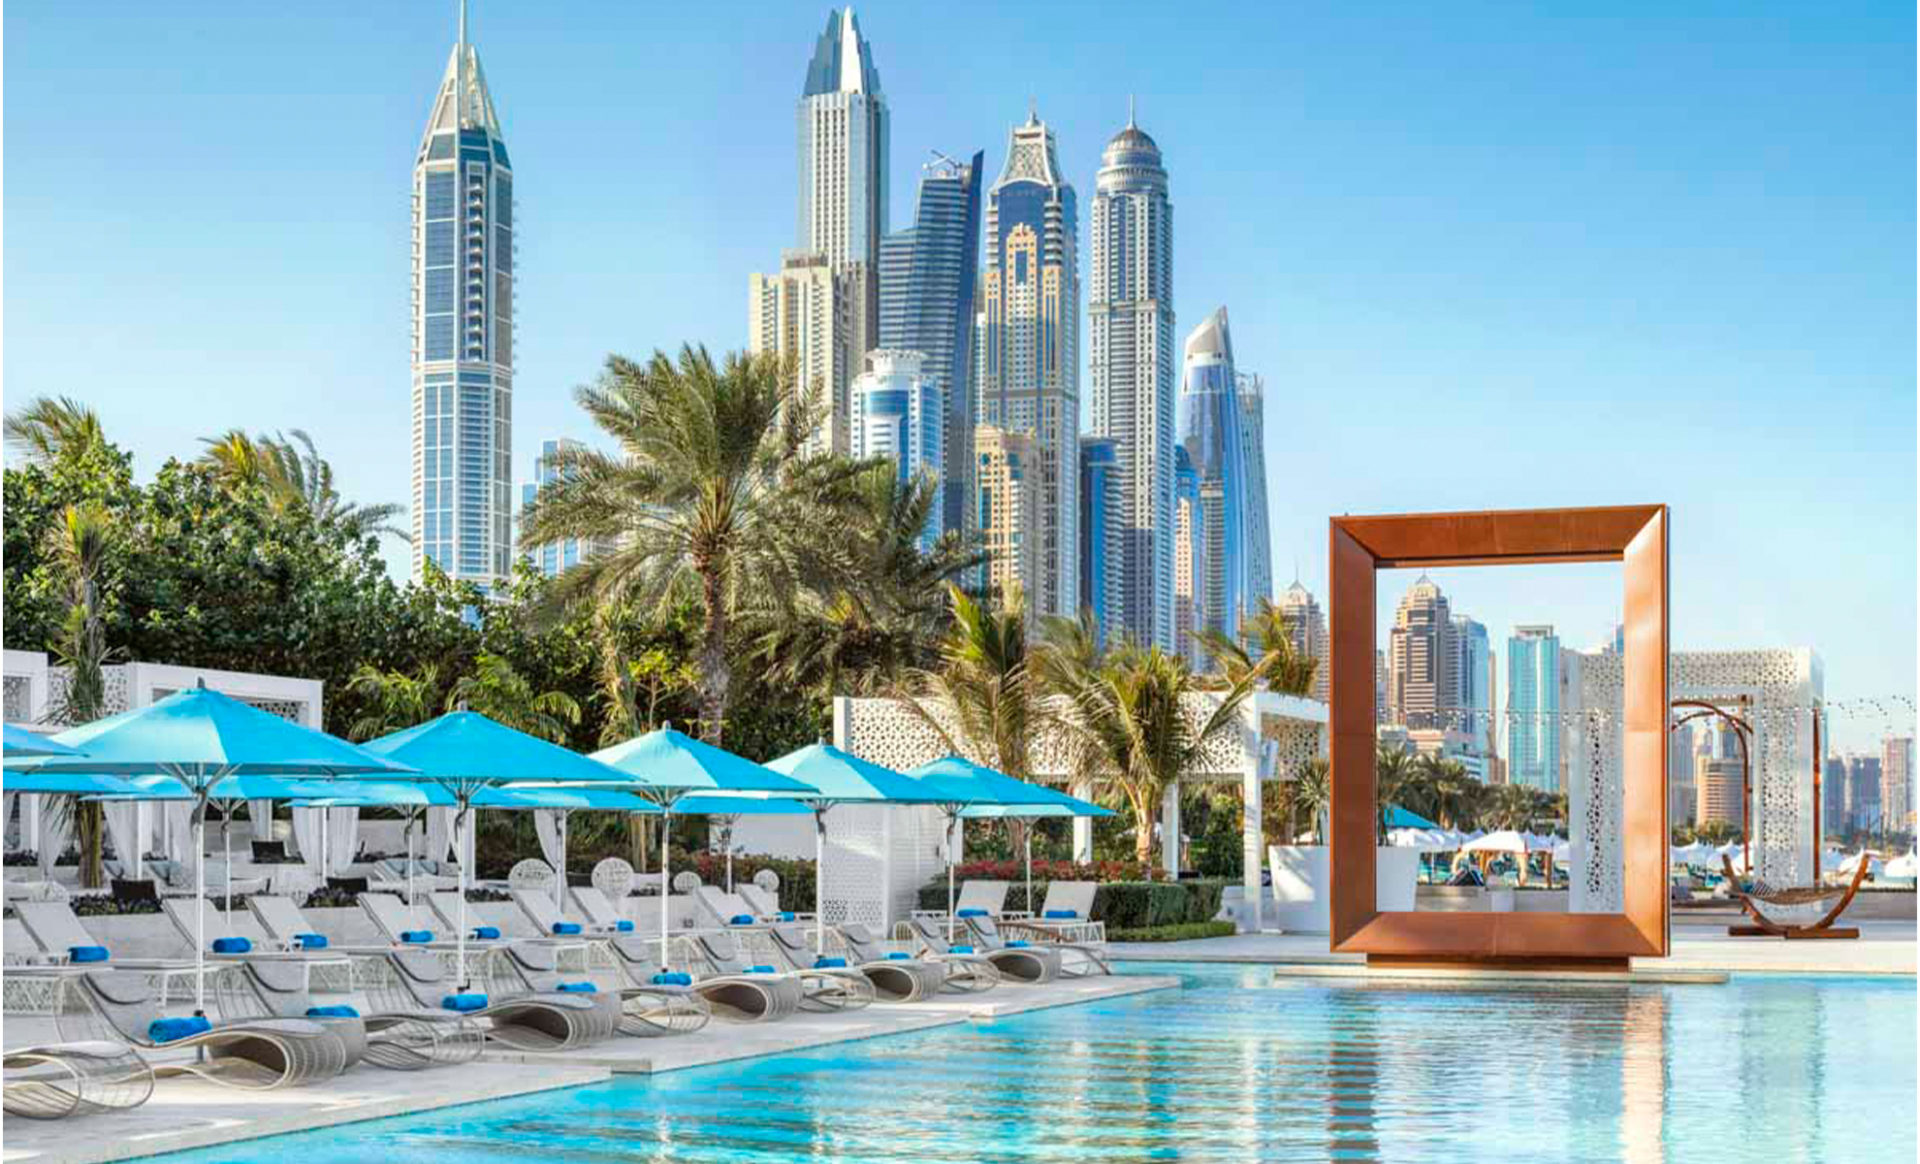 Arabian-Court-one-and-only-pool-Dubai-2